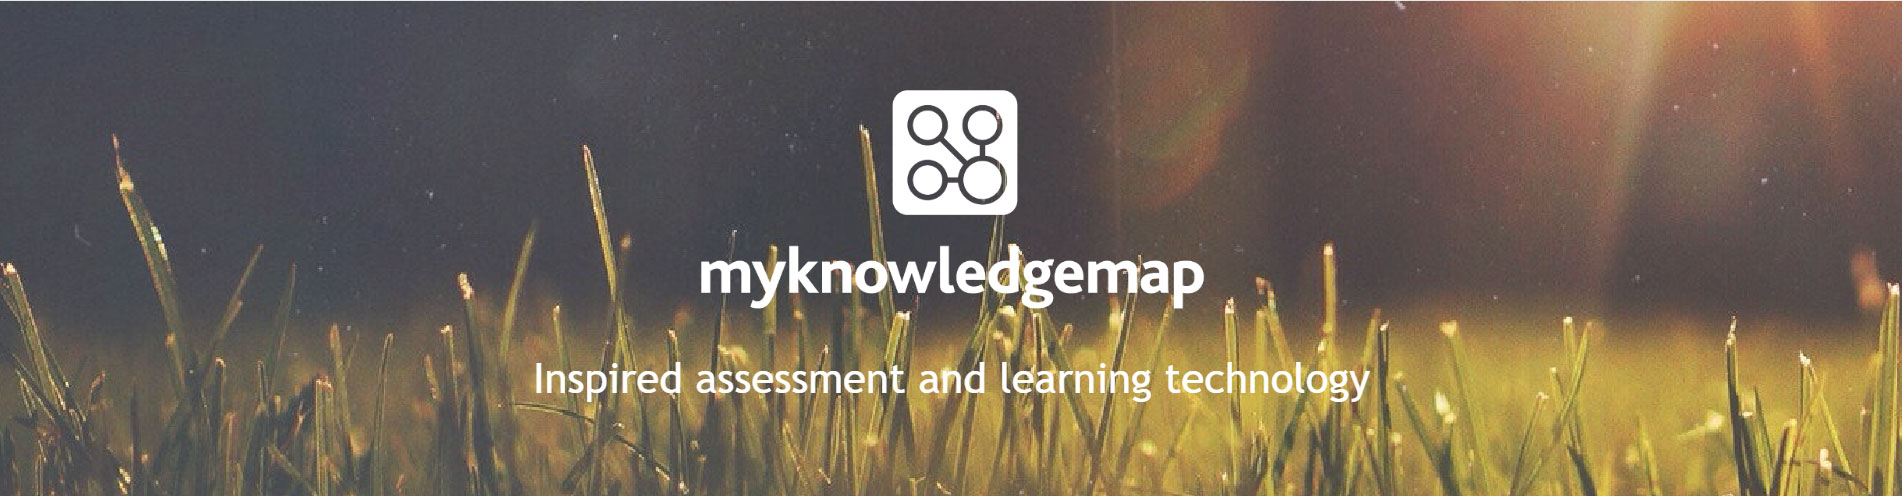 Myknowledgmap_logo